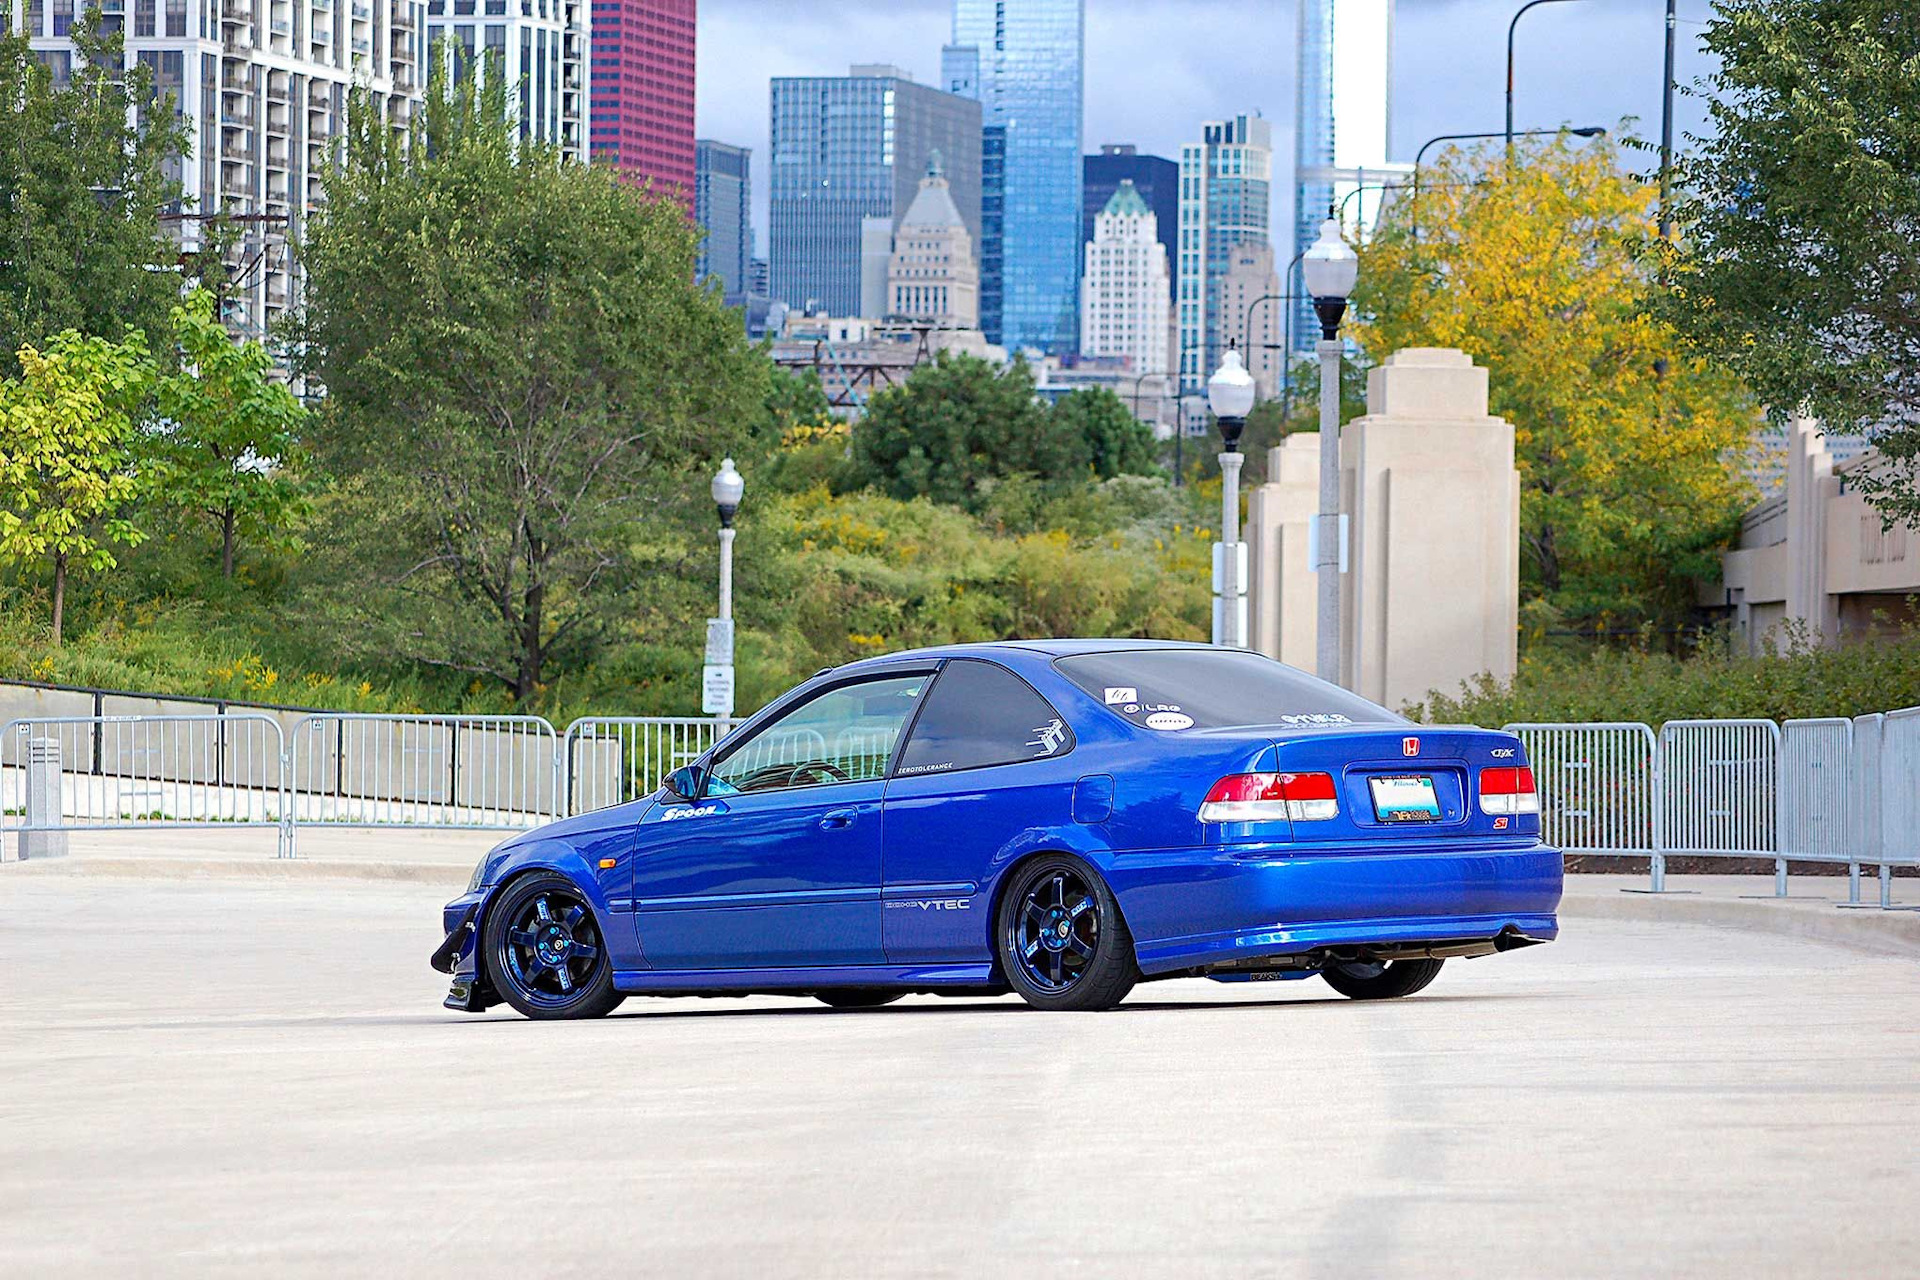 Civic coupe2